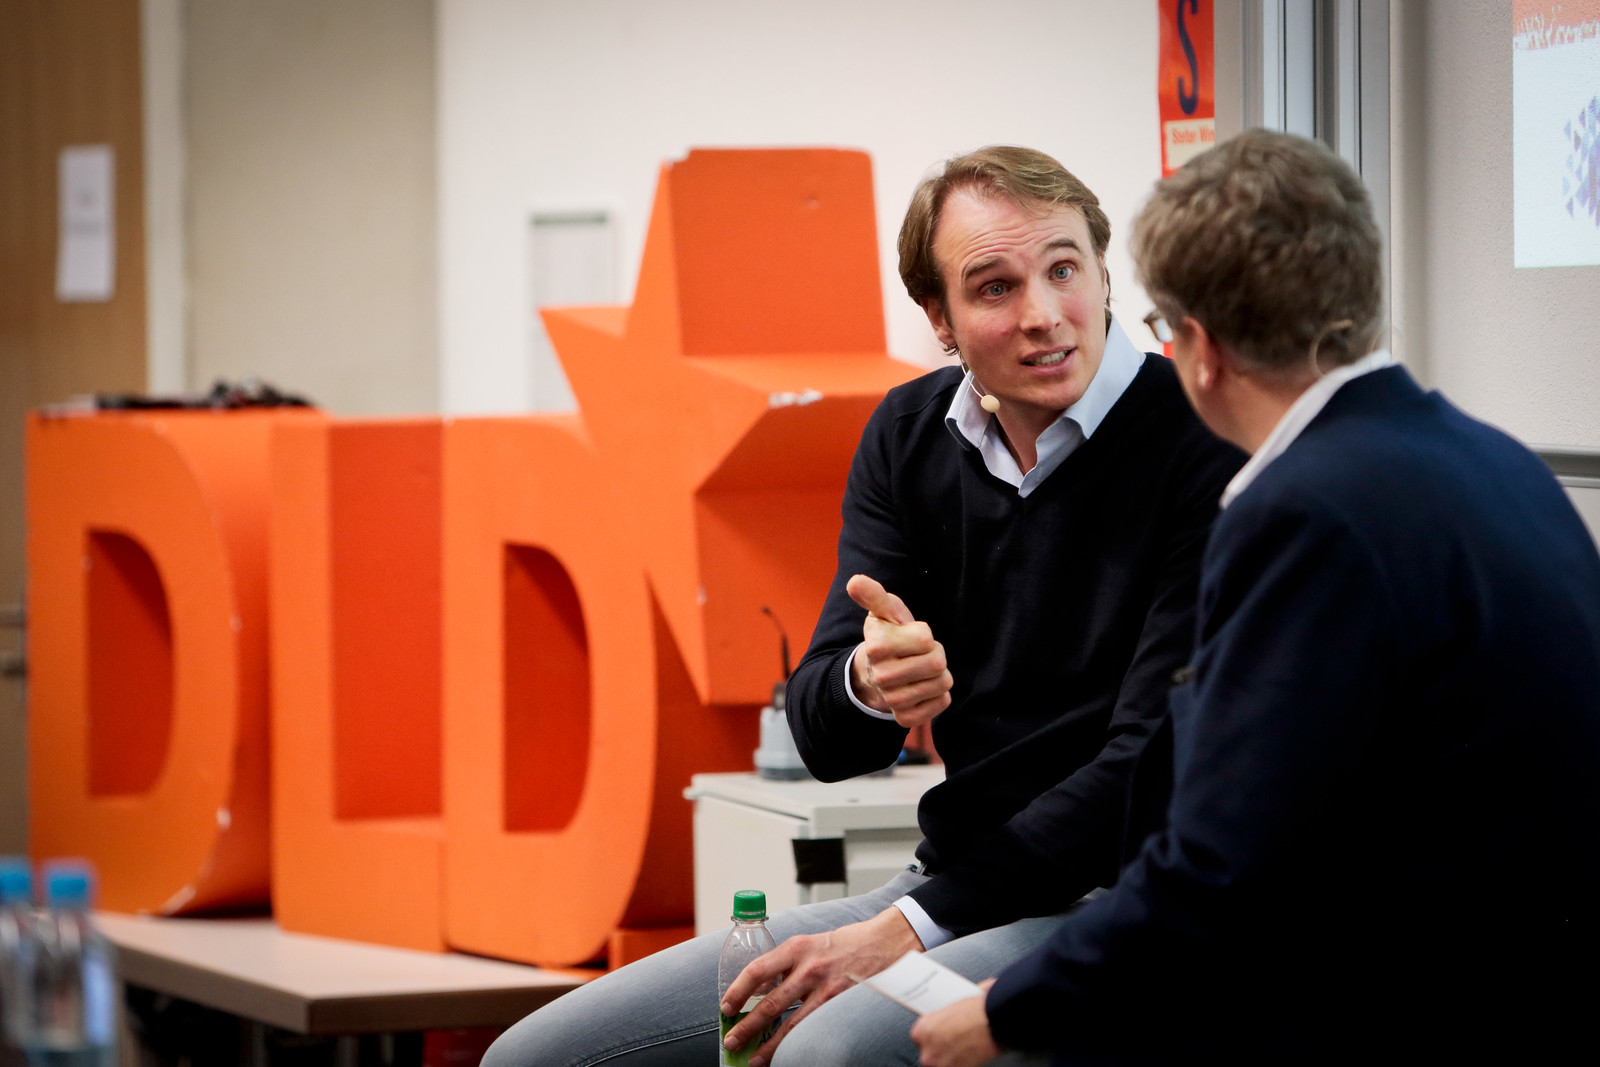 DLD Campus FIRE SIDE CHAT with Marc Samwer and Stefan Winners